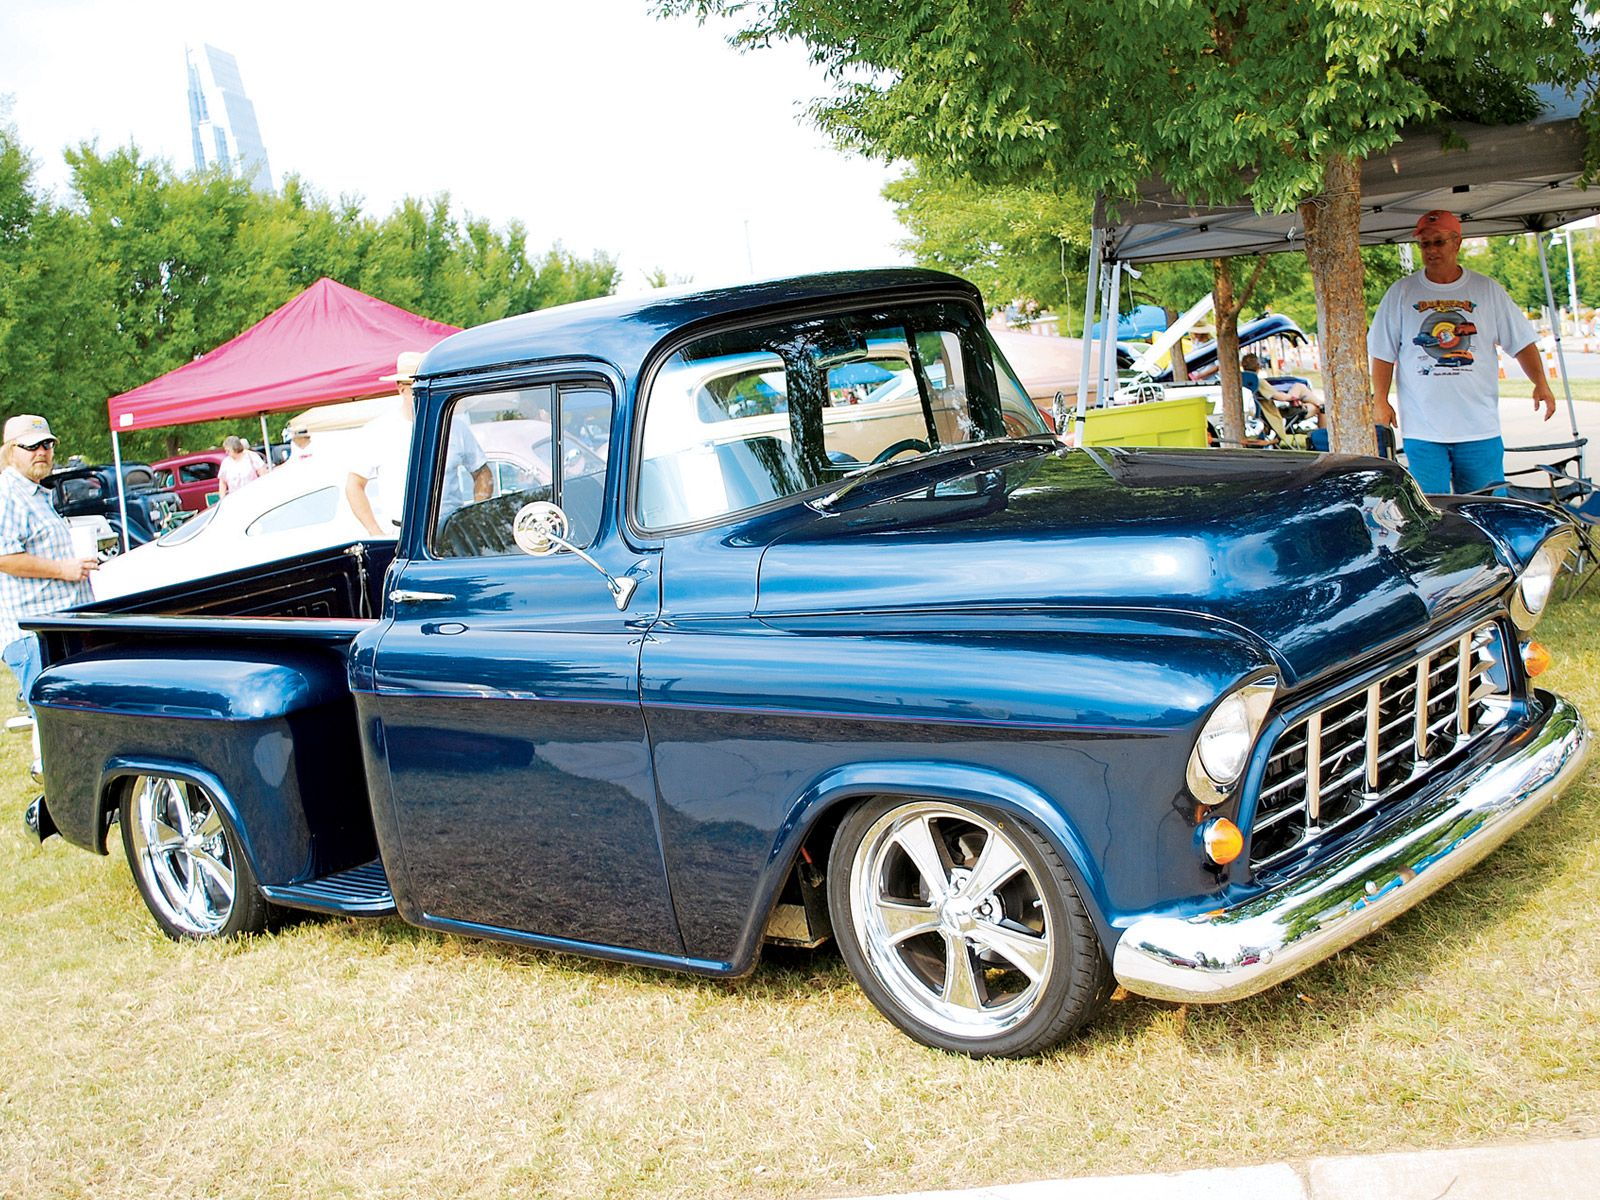 1955 ford f100 trucks for sale used cars on oodle autos post - 1949 1050 Chevy Truck Wheels Google Search Trucks Pinterest Truck Wheels Wheels And Chevy Pickups